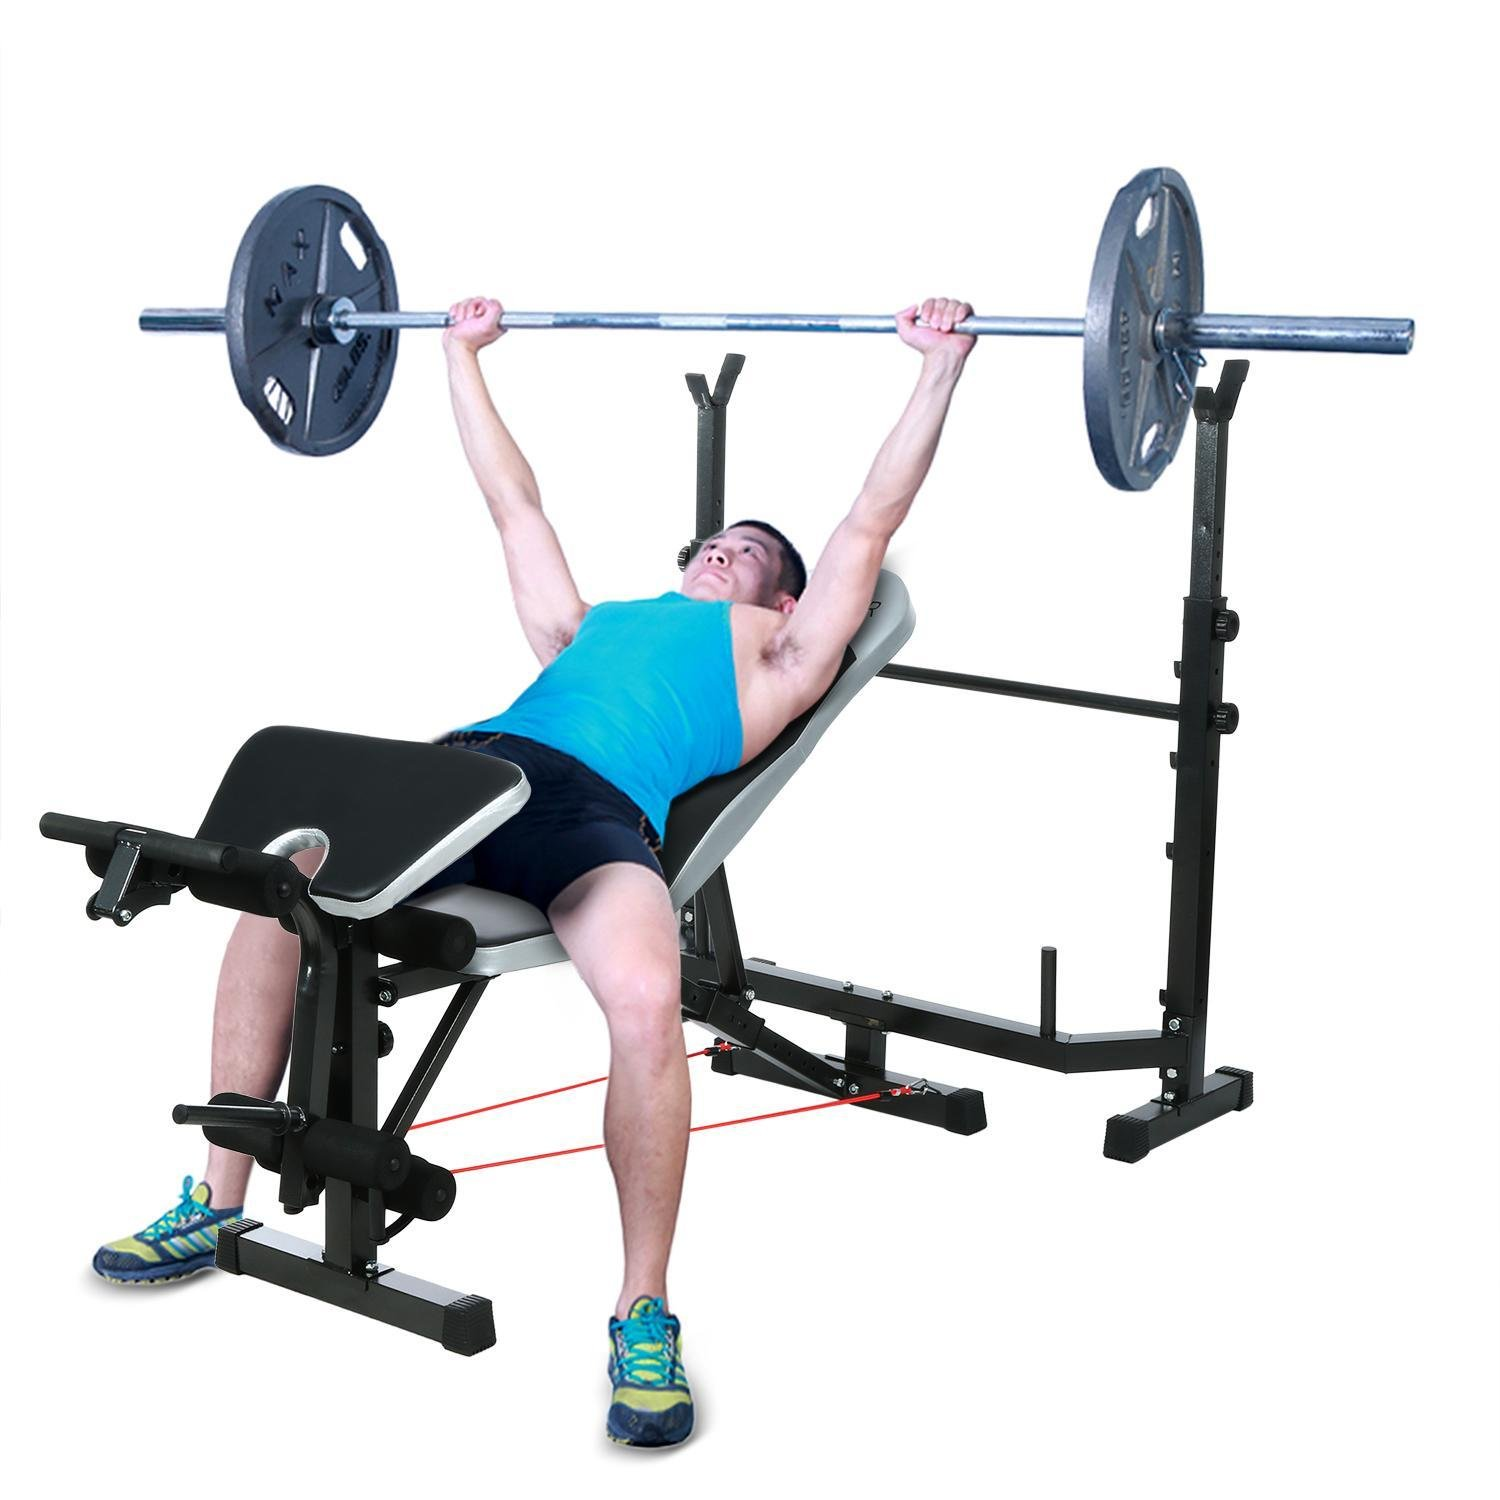 Dickin Adjustable Olympic Weight Bench 660lbs Workout Black Bench Set with Preacher Curl/ Leg Developer Utility Bench (US Stock)